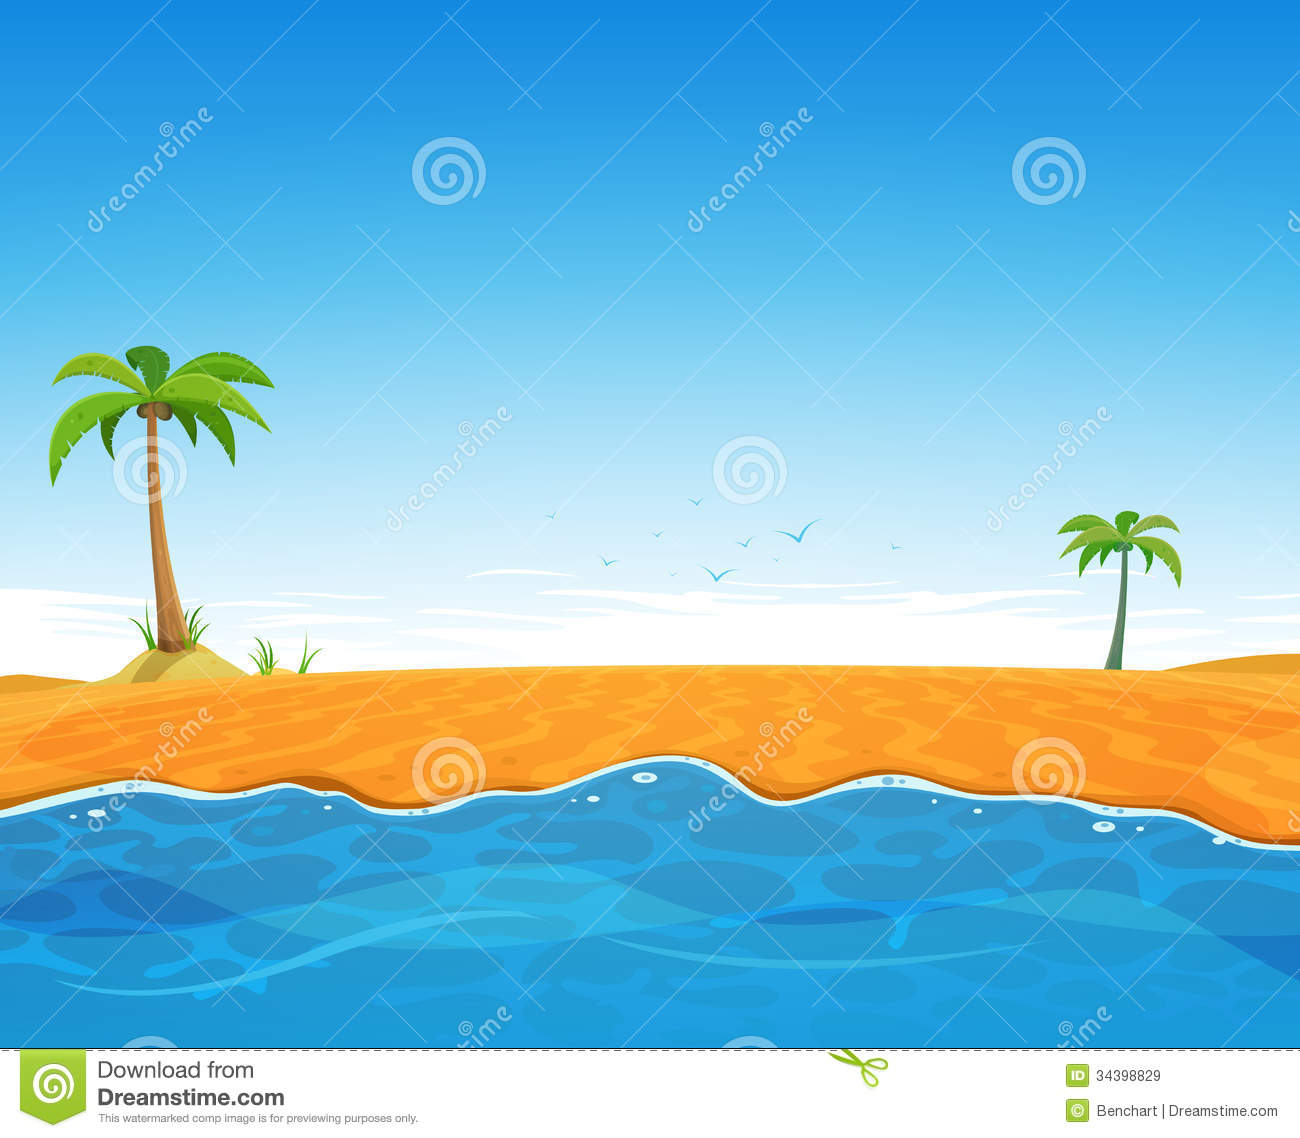 Beautiful Vintage Summer Seaside Illustration Royalty Free: Tropical Summer Beach Stock Vector. Illustration Of